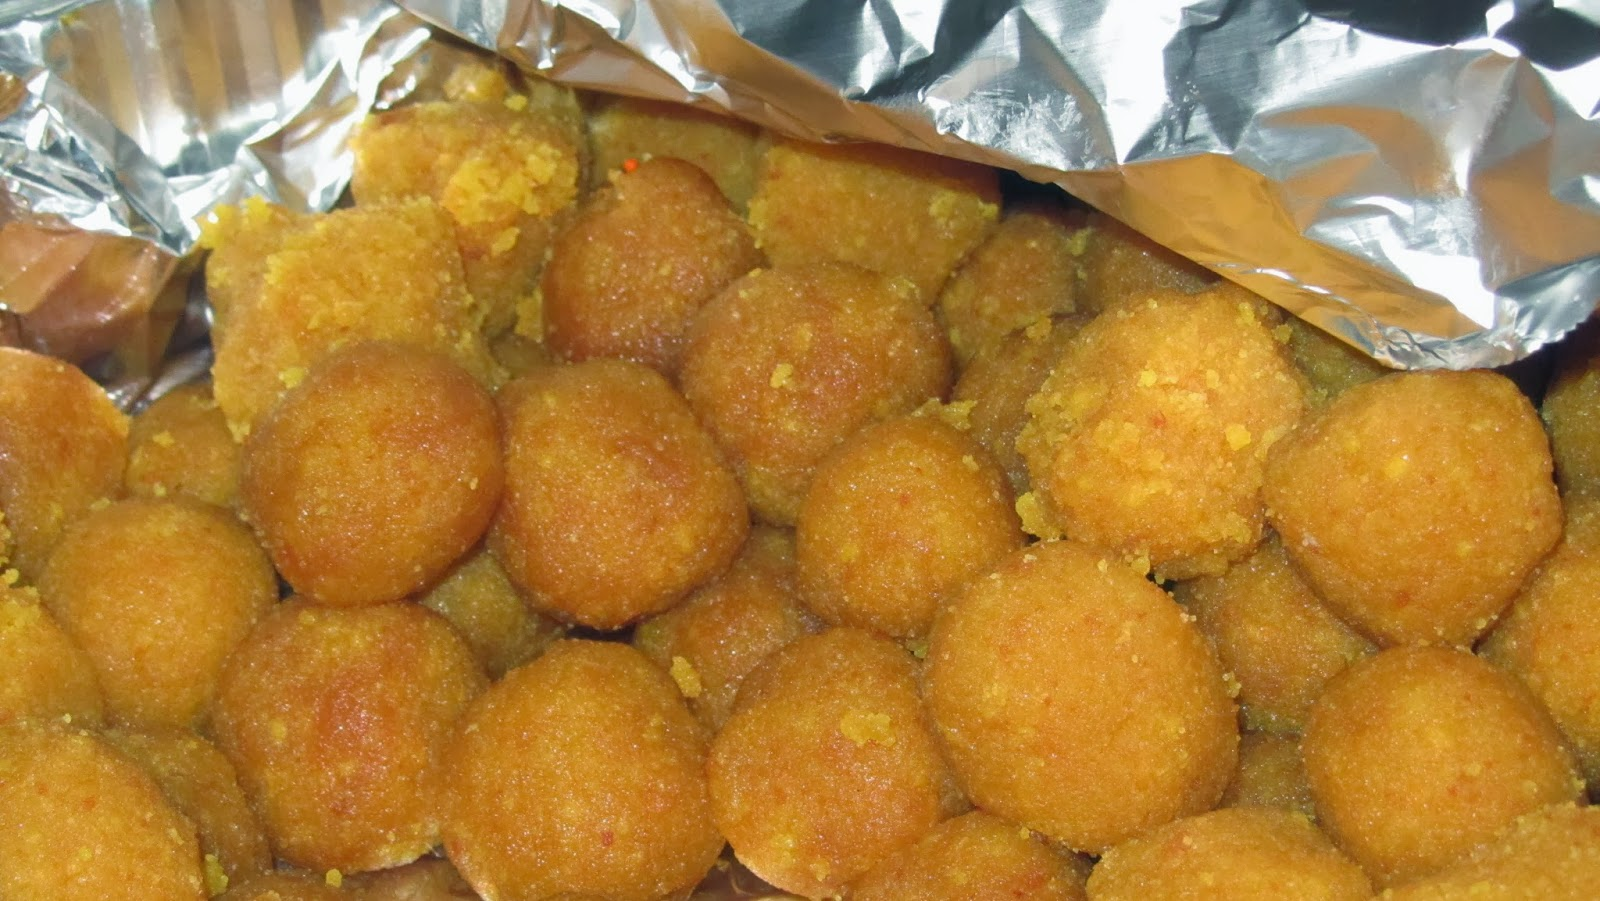 Around The World In 80 Meals: Shubh Diwali